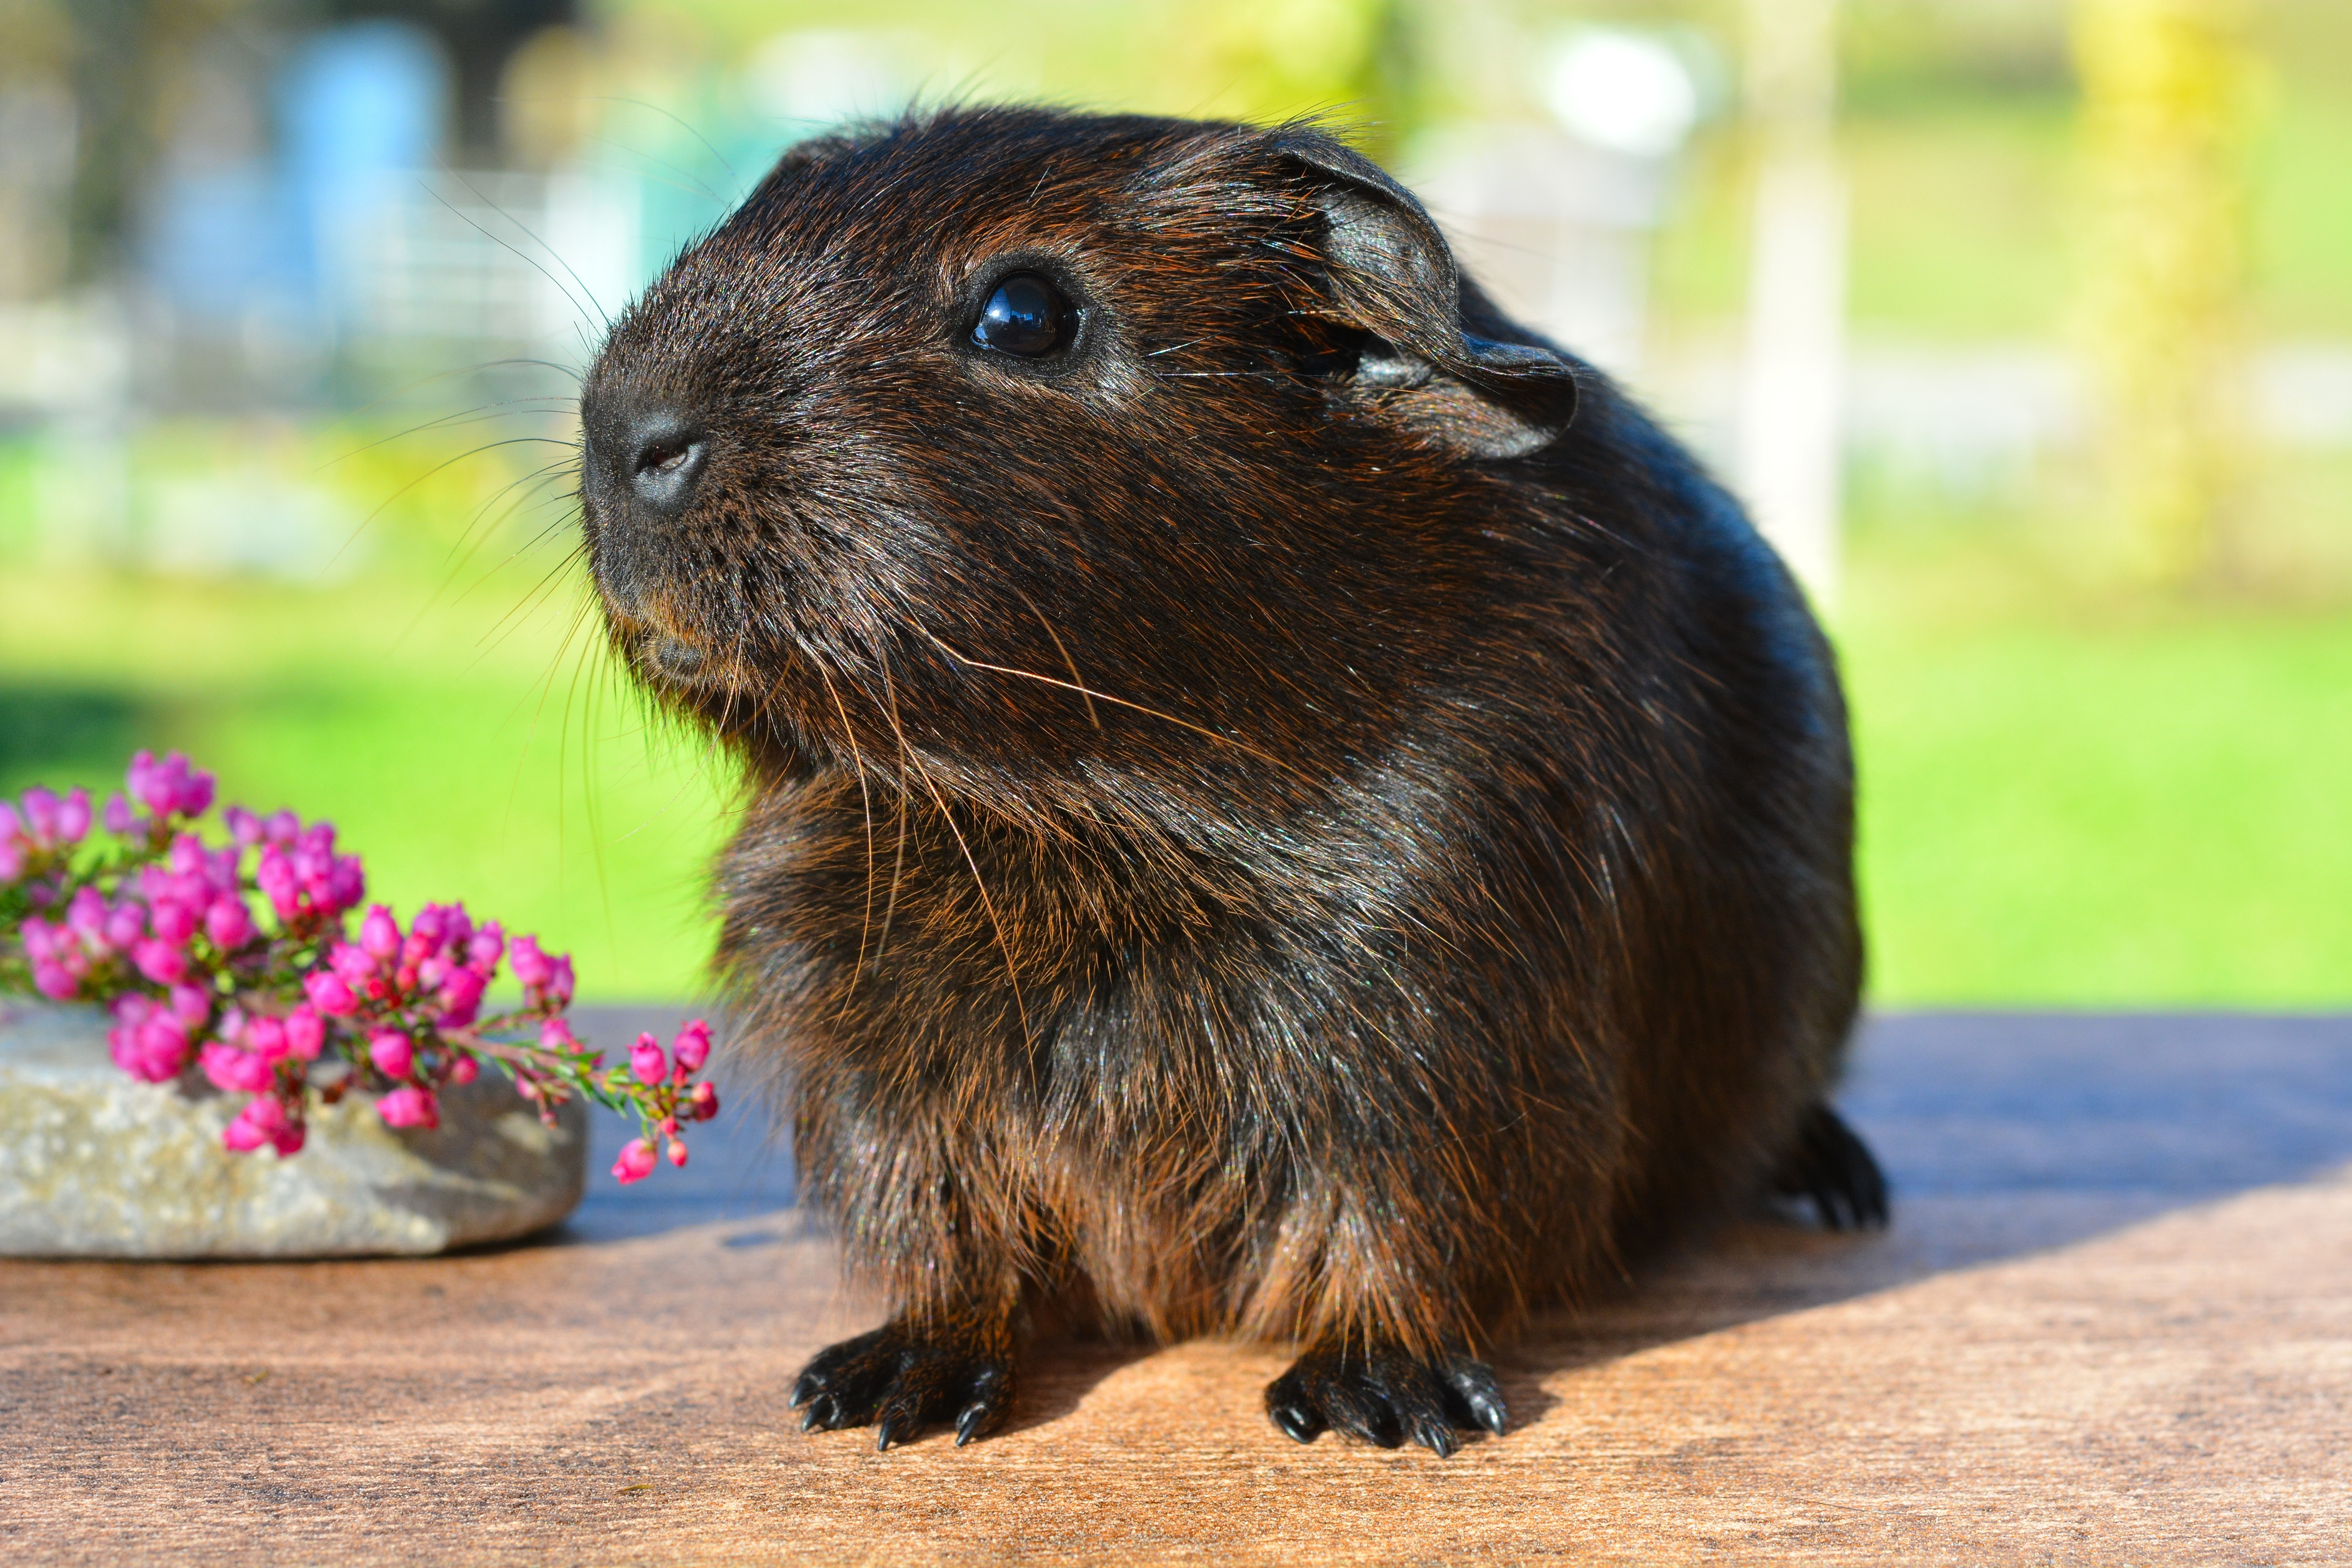 133008 download wallpaper Animals, Guinea Pig, Rodent, Shine, Brilliance screensavers and pictures for free